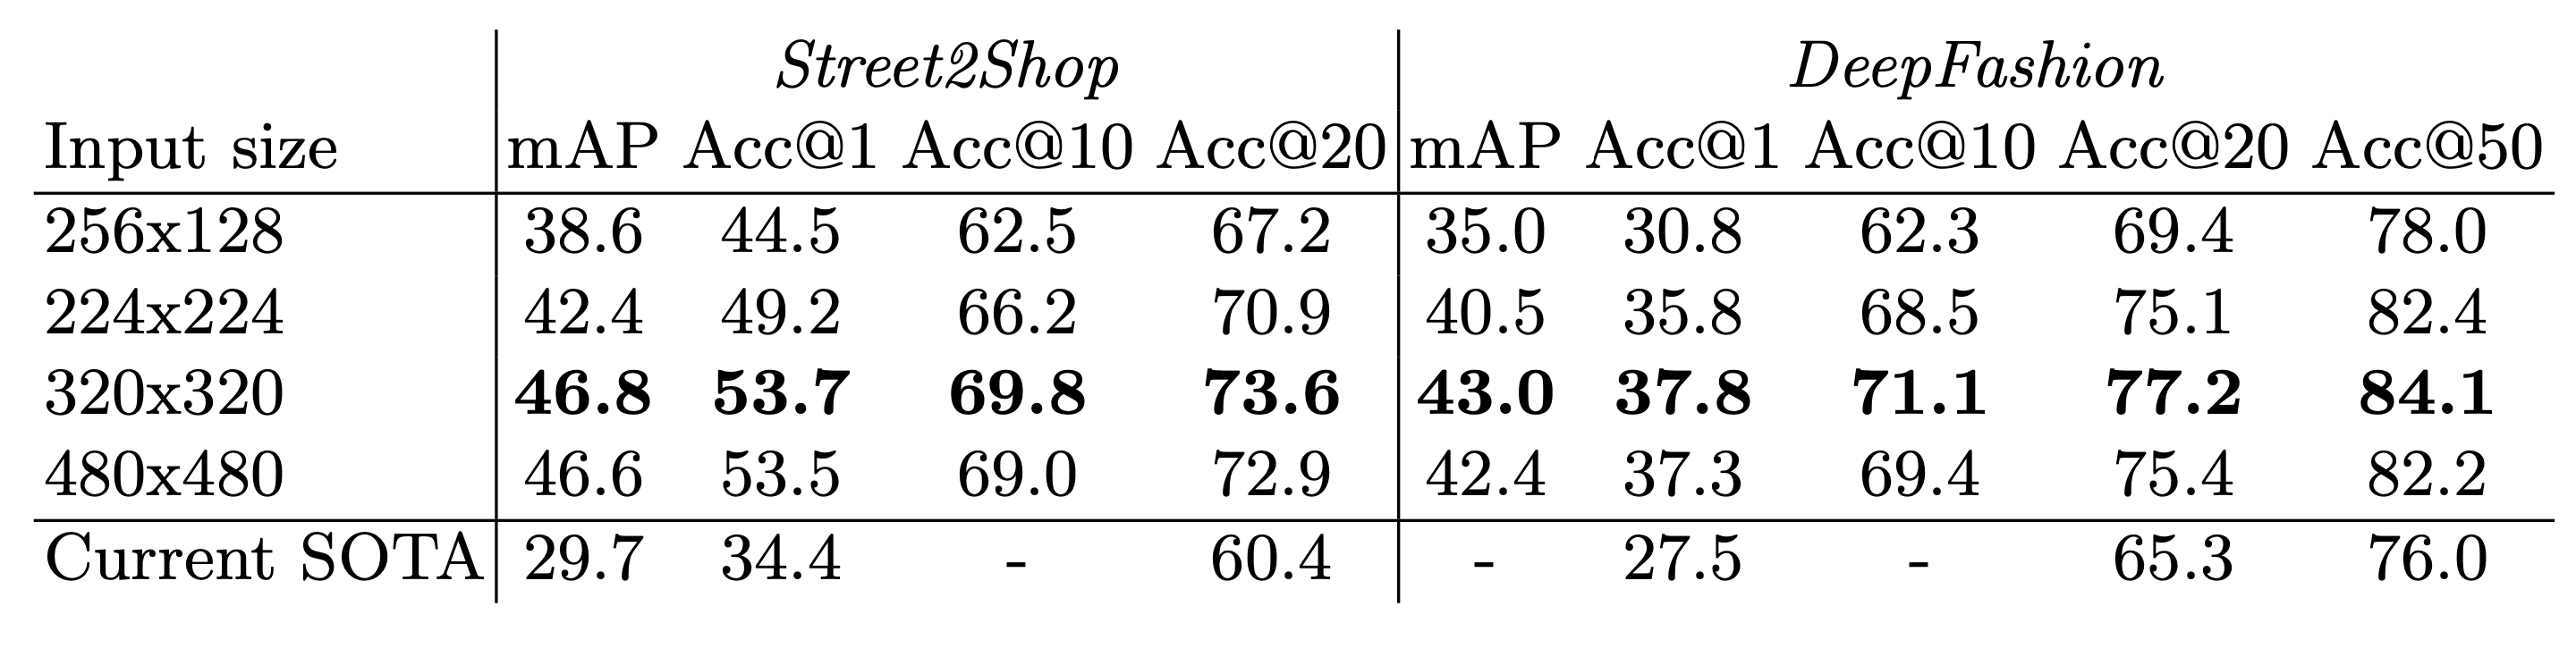 Table with Comparison of performance of clothes retrieval with different input image sizes. All experiments were performed using Resnet50-IBN-A RST model with all tricks enabled, quadruplet loss function and without re-ranking